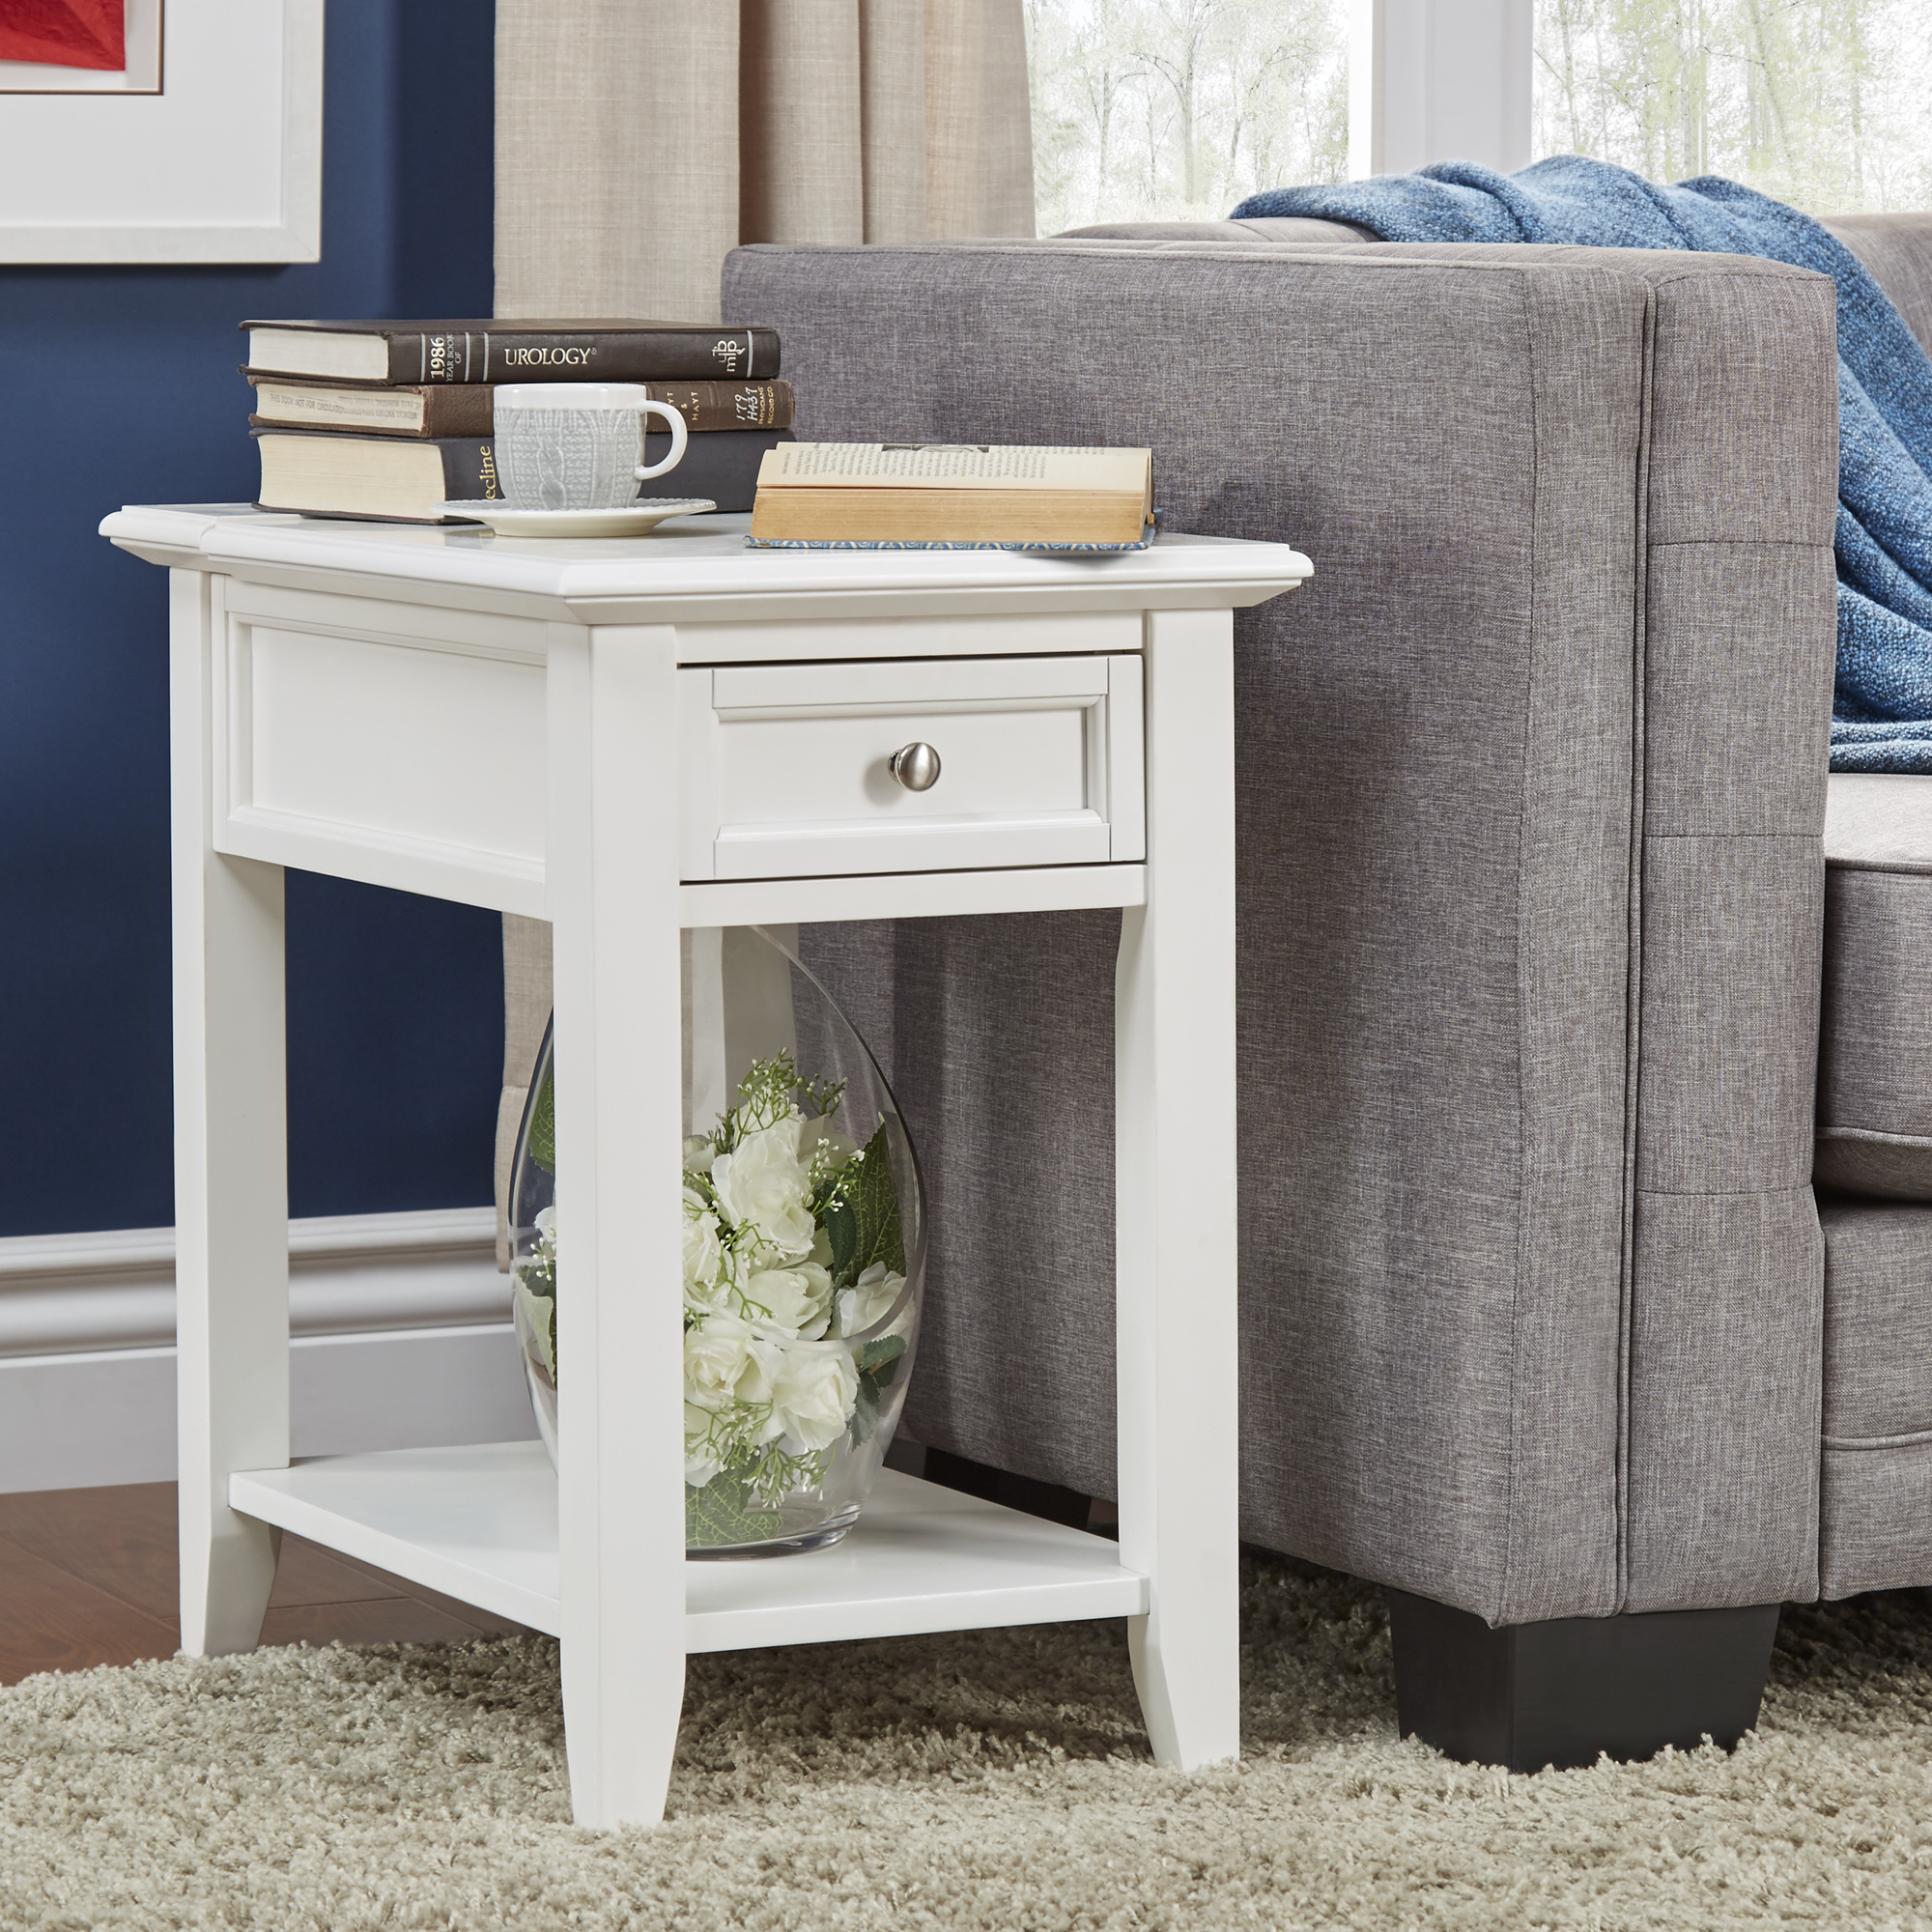 oxford creek ellason charging accent table white home prod end with phone charger furniture living room coffee tables ashley reclining sofa antique ethan allen next side nursery